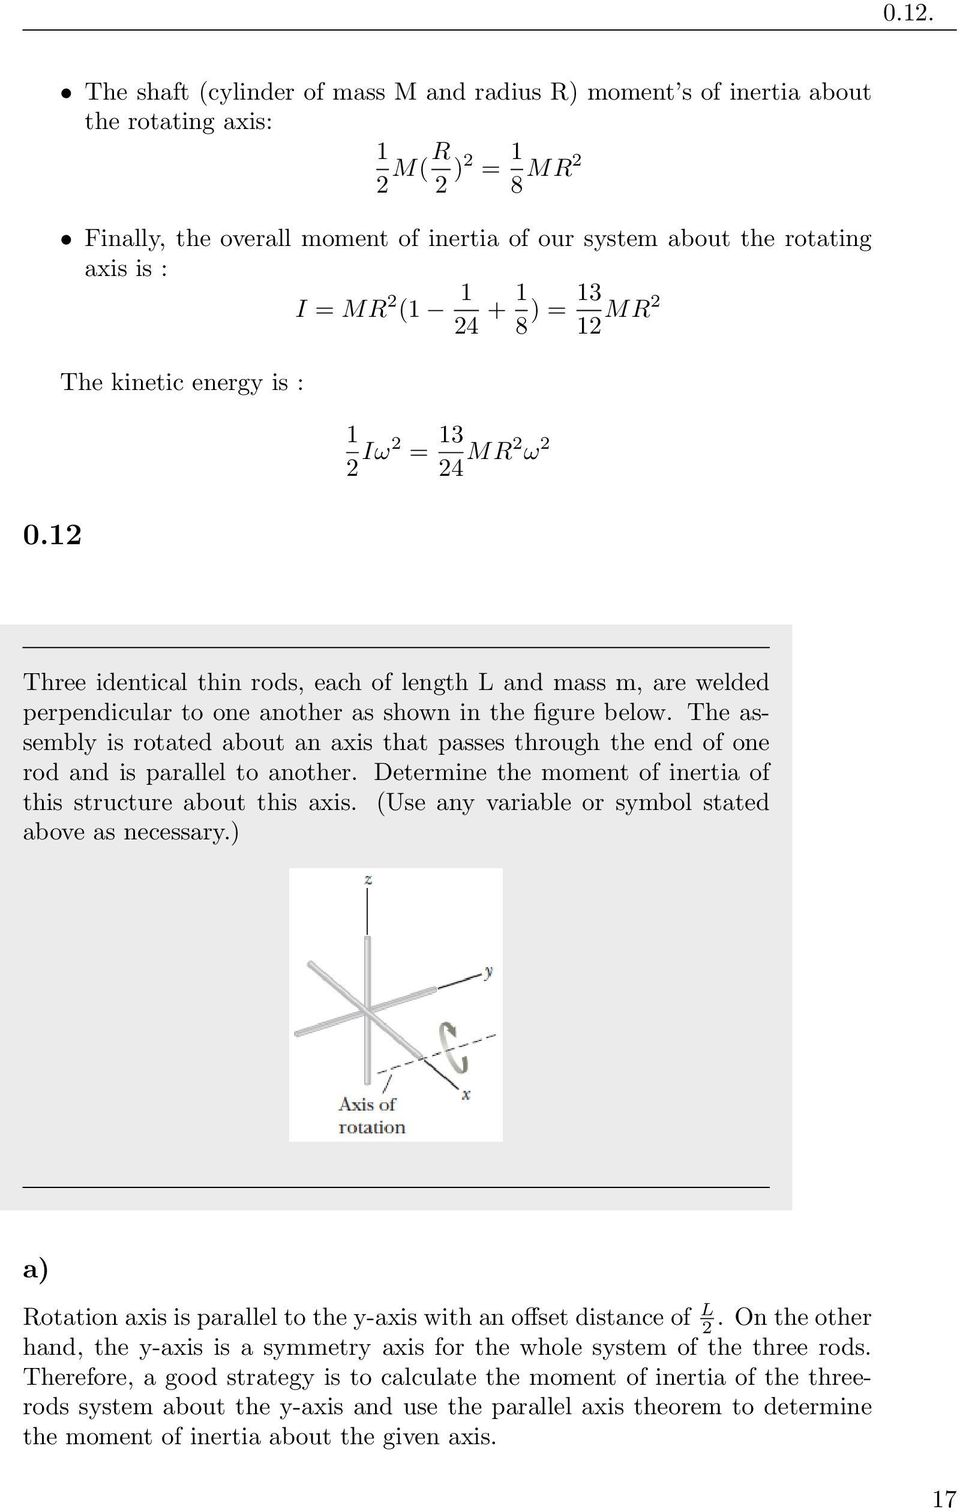 Physics 111 Homework Solution 9 April 5 Pdf Trebuchet Diagram System Of The Device Mr 2 1 24 8 13 12 Mr2